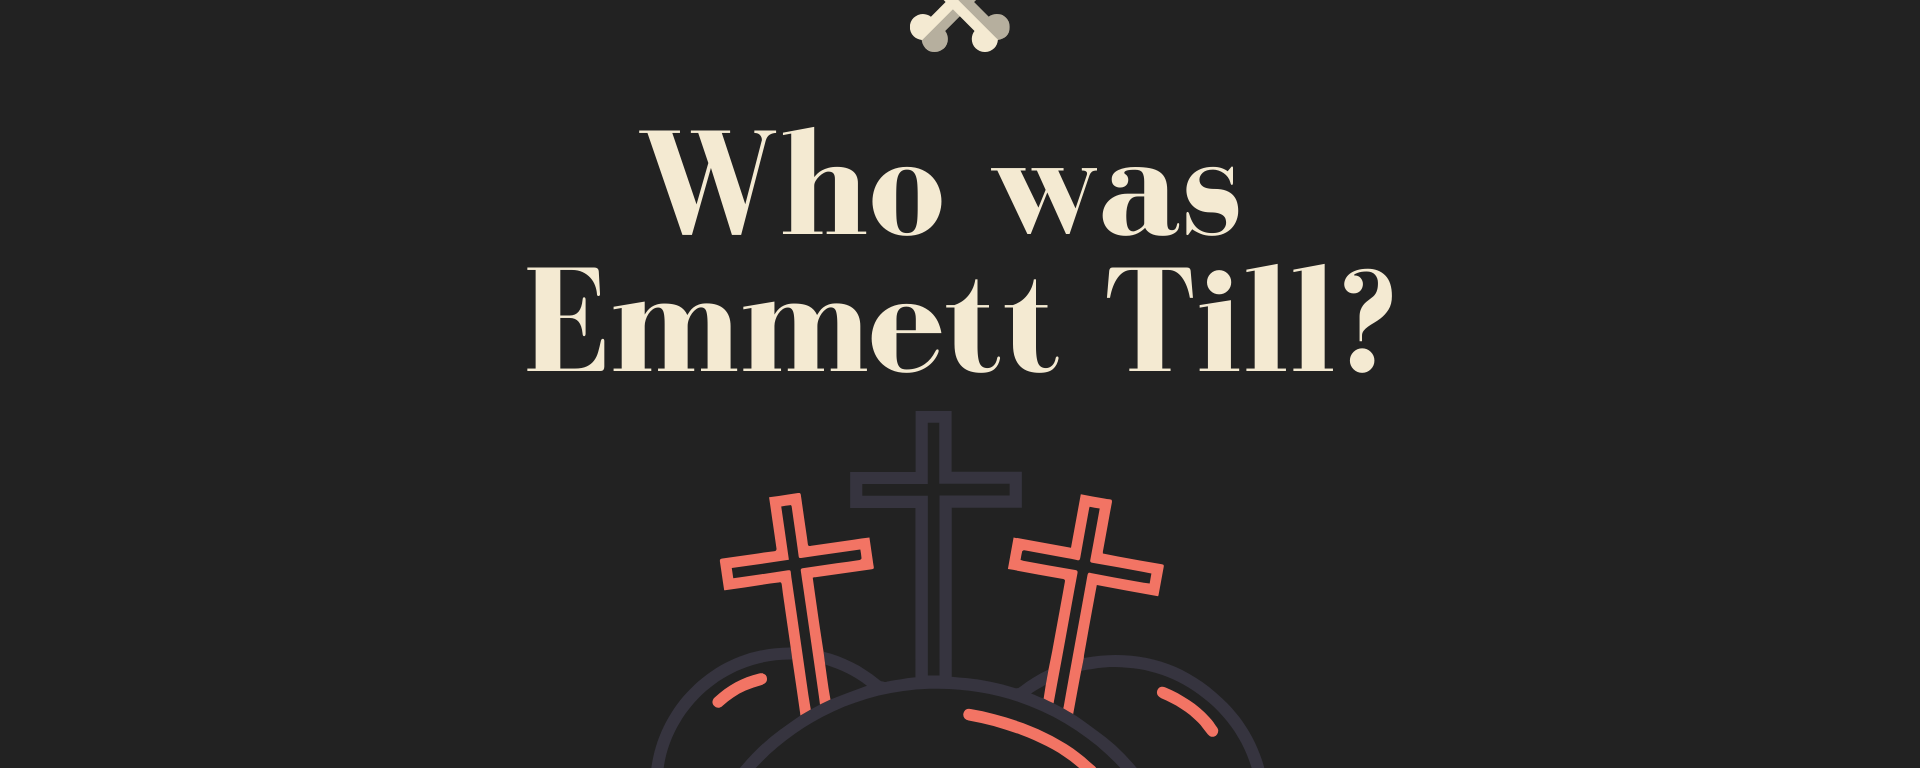 "A black background with the words ""Who was Emmett Till?"" The background has a red border and there are two red crosses below the text."